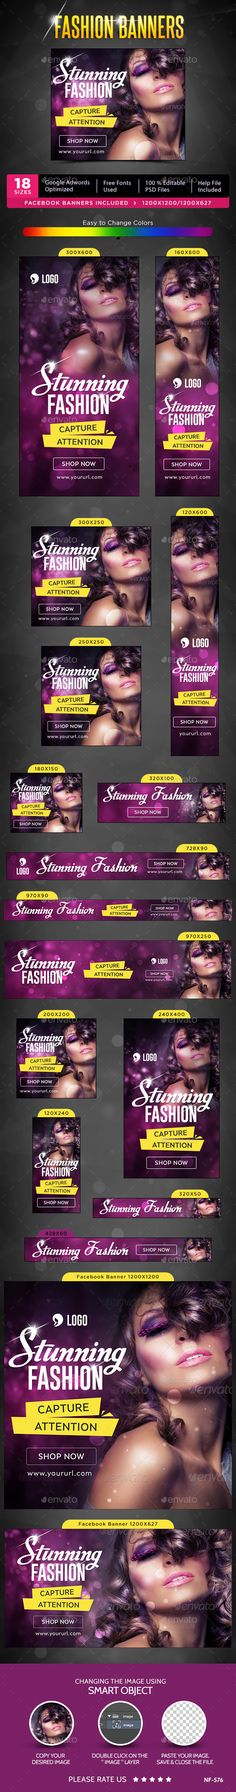 Fashion Banners Template #design #ads #web Download: http://graphicriver.net/item/fashion-banners/12482777?ref=ksioks